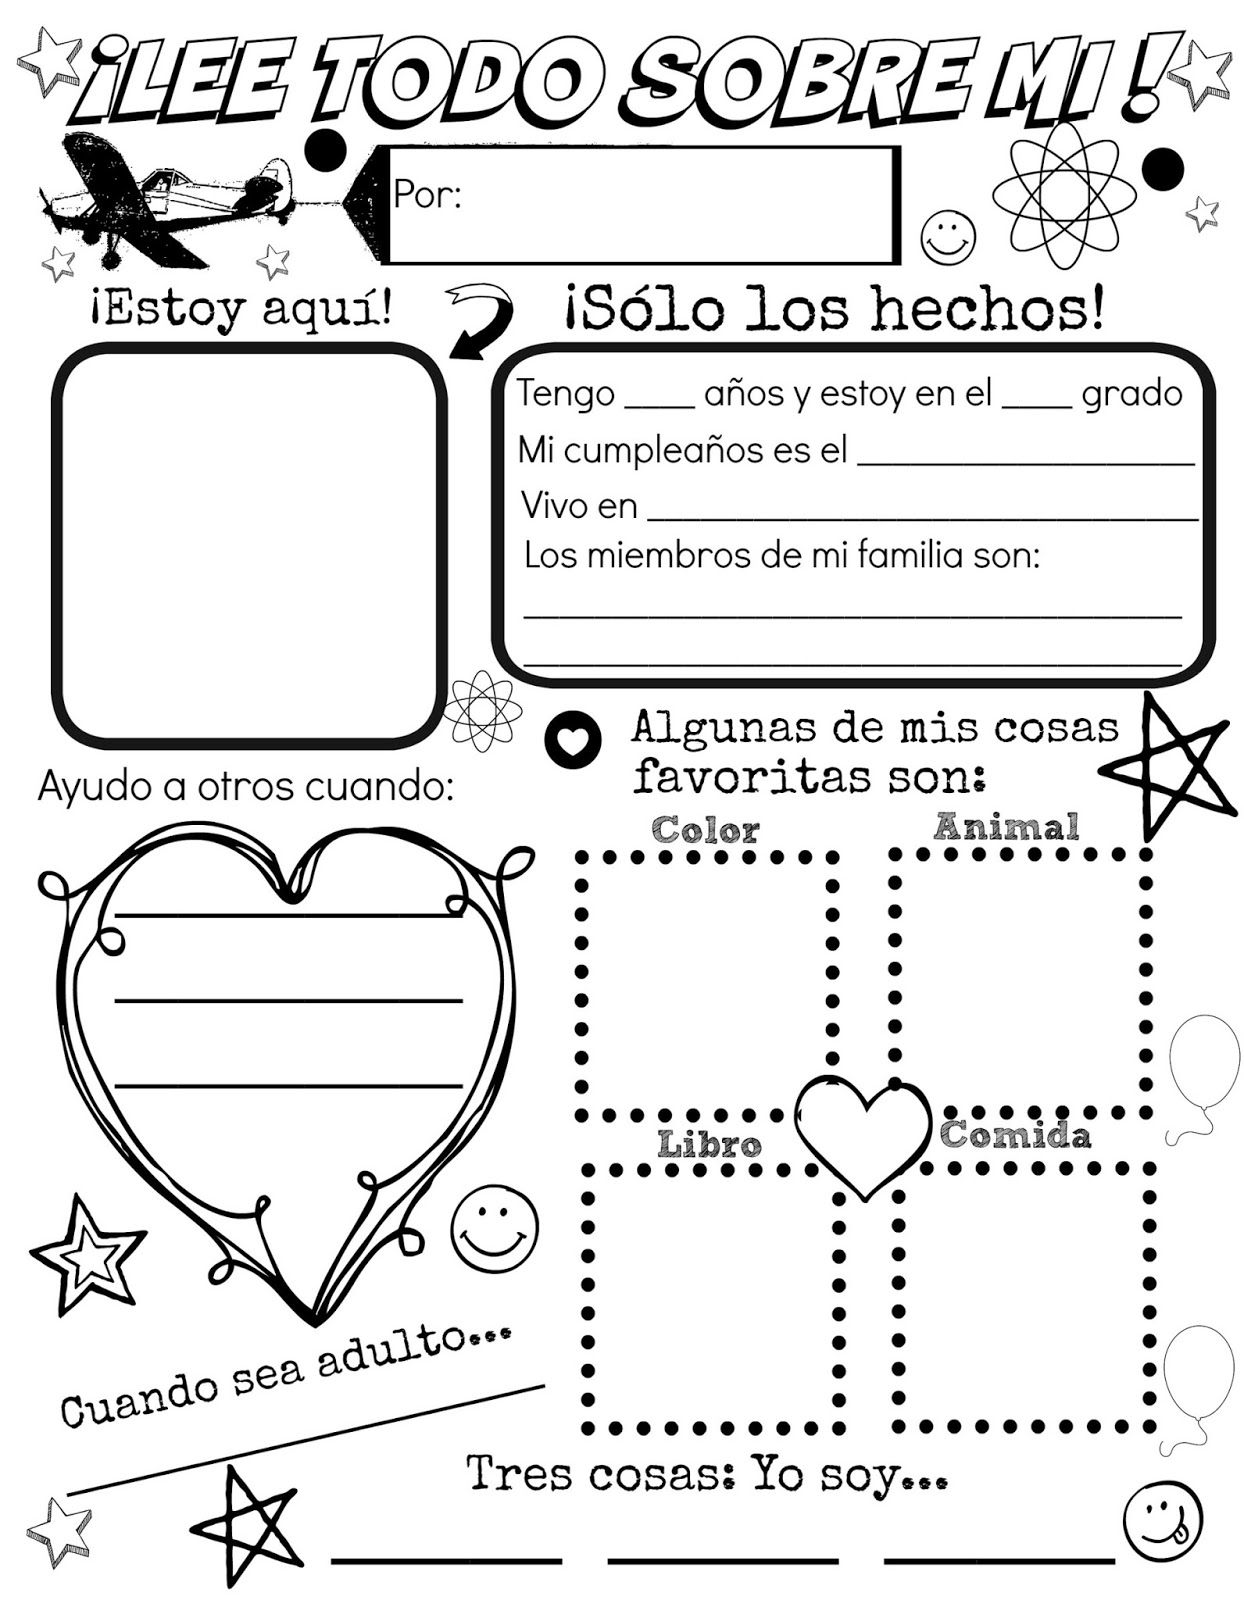 picture relating to All About Me Free Printable Worksheet named All Relating to Me Absolutely free Spanish Printable Learning the